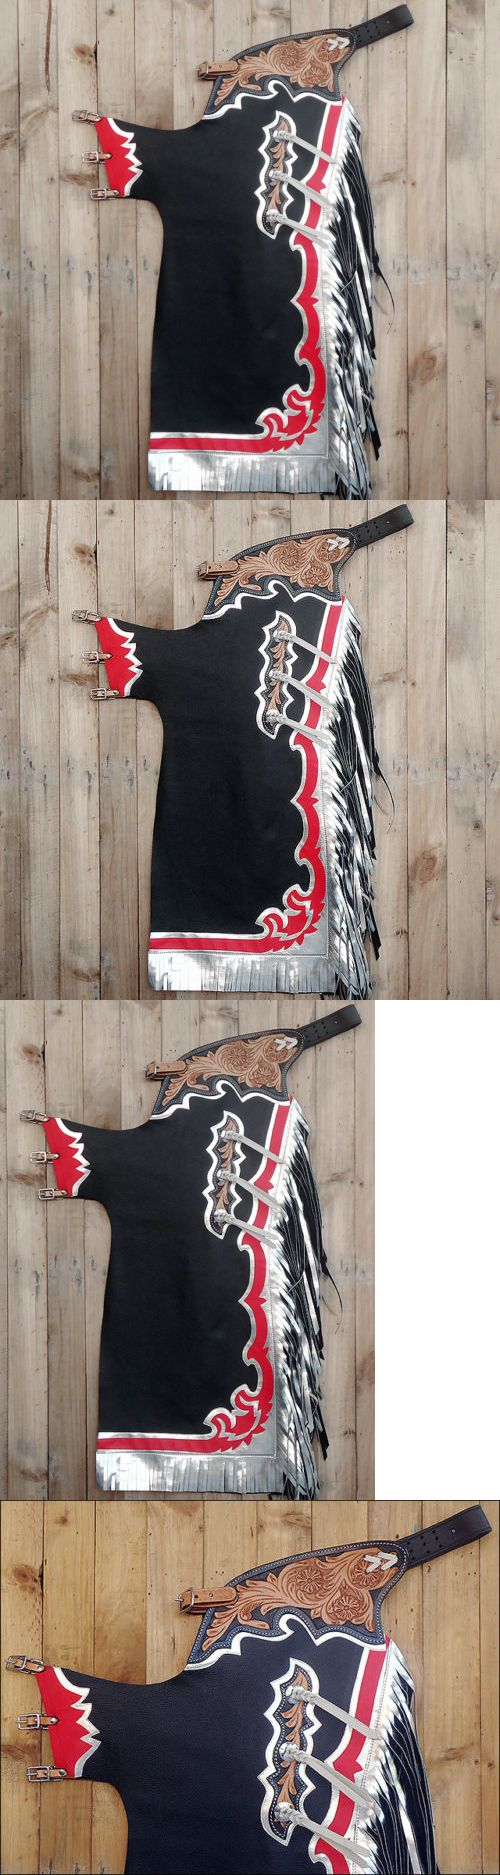 Western Chaps Full Chaps 183358: Hilason Bull Riding Genuine Black Leather Pro Rodeo Western Chaps -> BUY IT NOW ONLY: $198.99 on eBay!